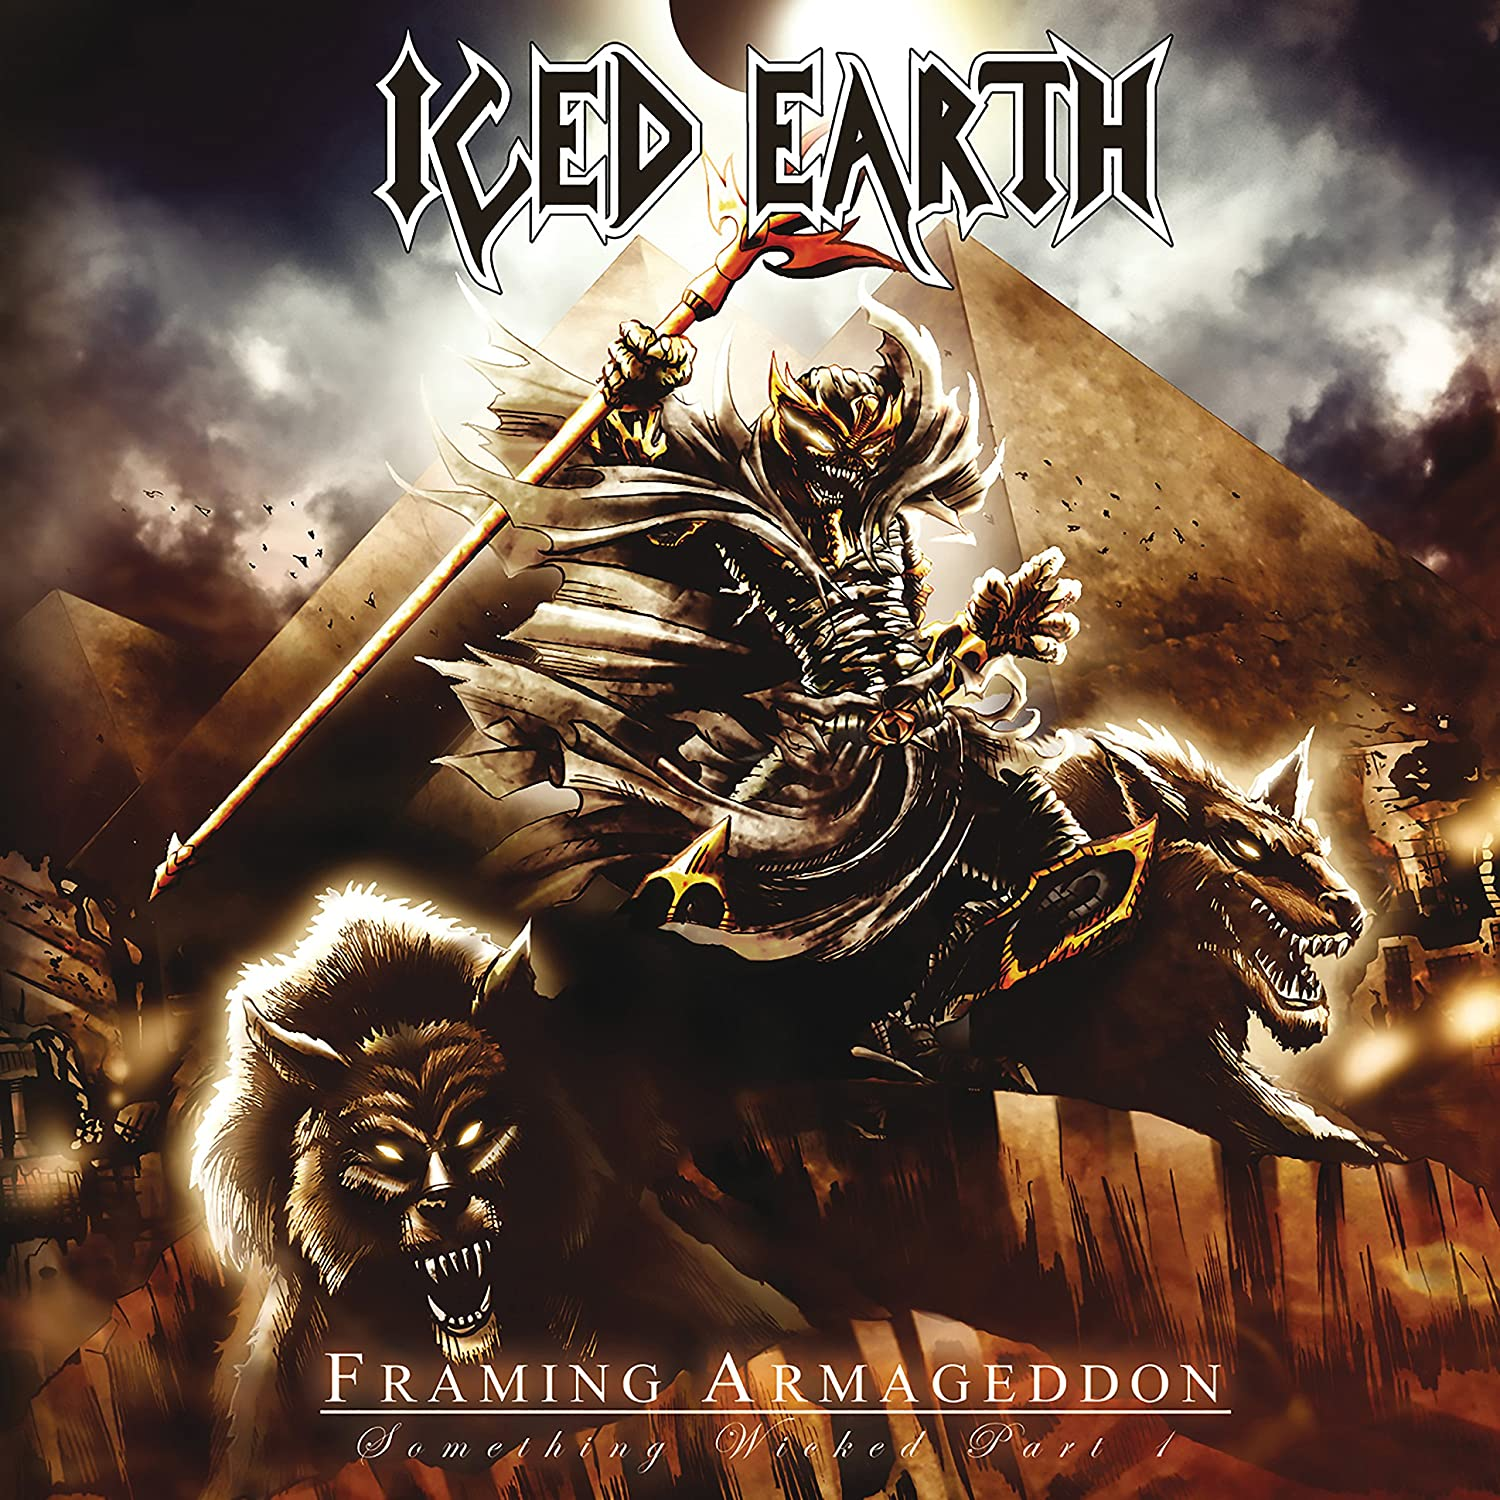 Framing Armageddon (Something Wicked Part I) - Iced Earth: Amazon.de ...